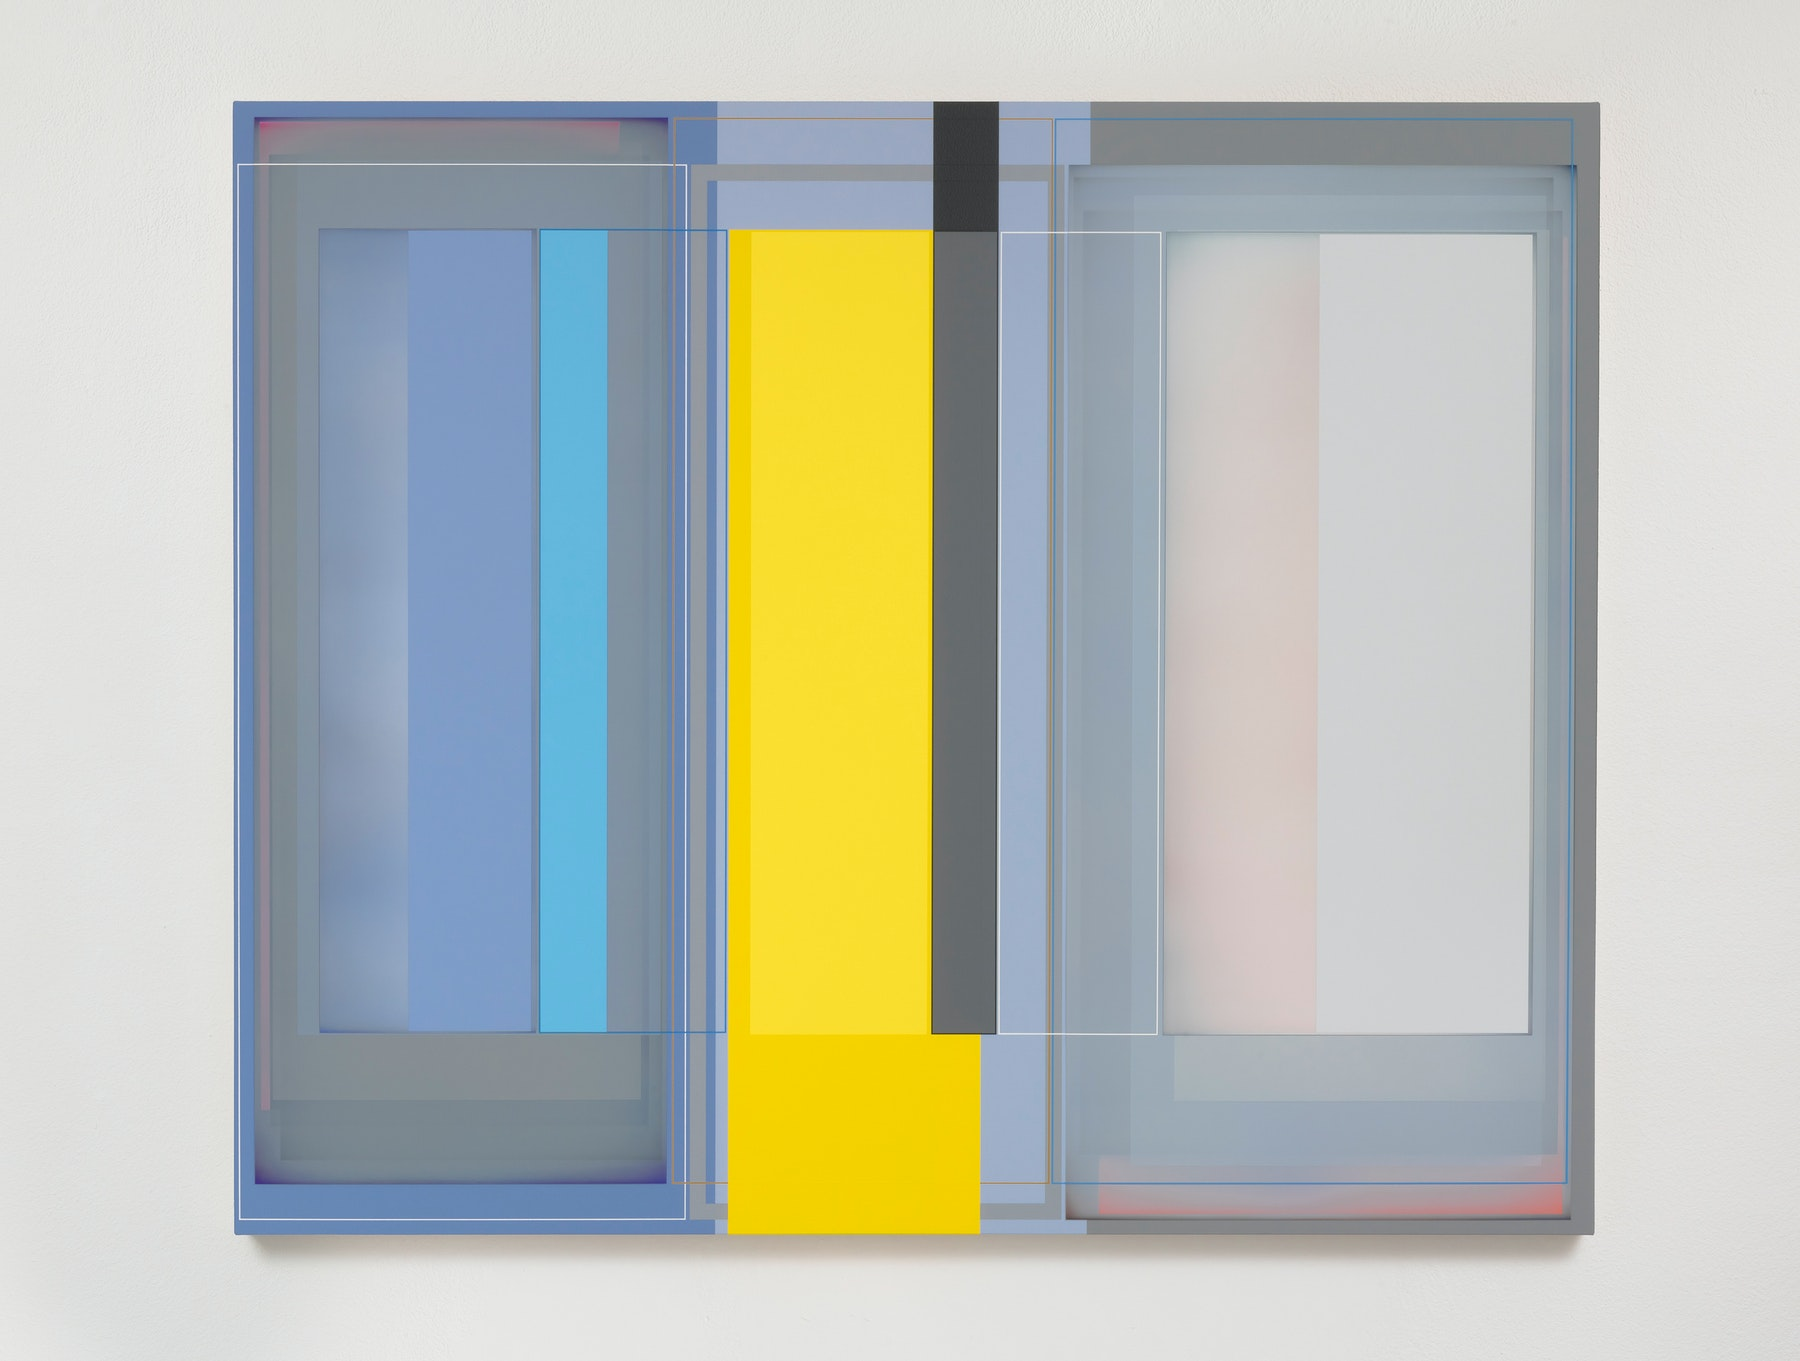 """Patrick Wilson """"Inside Space,"""" 2020 Acrylic on canvas 49"""" x 59"""" [HxW] (124.46 x 149.86 cm) Inventory #WIL567 Courtesy of the artist and Vielmetter Los Angeles Photo credit: Robert Wedemeyer"""